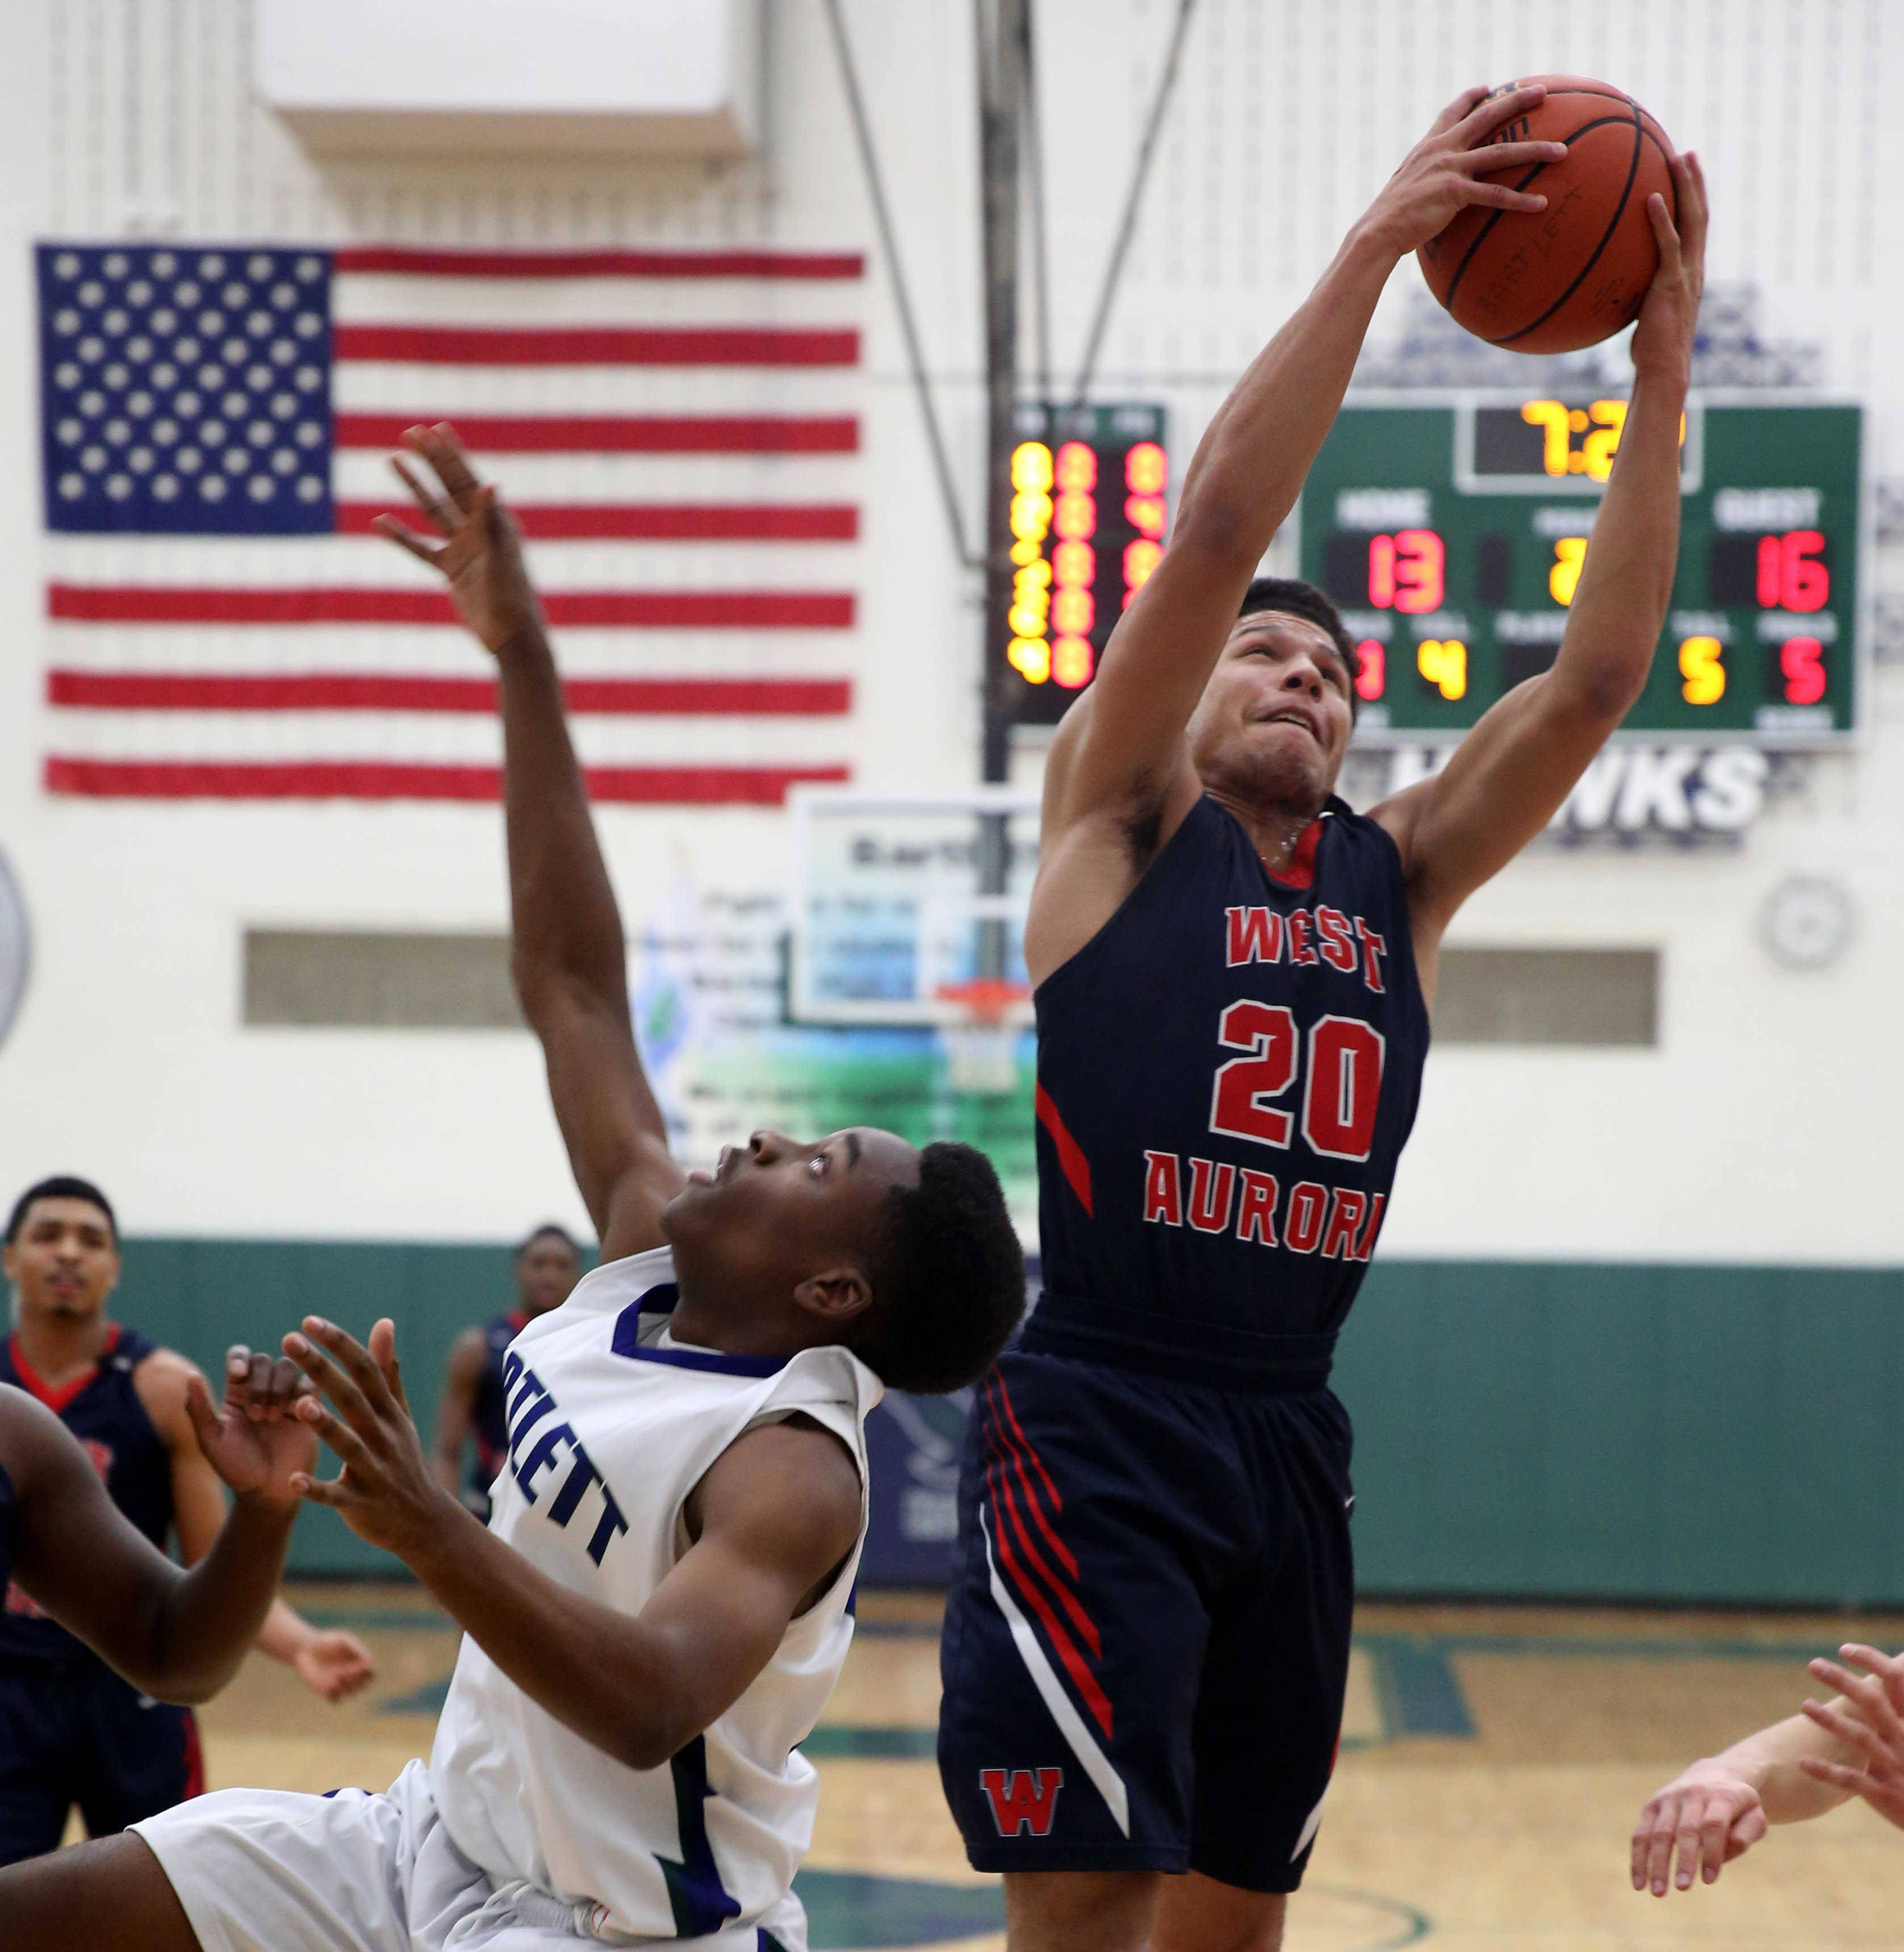 West Aurora's Caleb Siler (20) grabs a rebound against Bartlett earlier this season. West Aurora tackles No. 1 Bolingbrook Tuesday in one semifinal of the Class 4A Lincoln-Way East sectional.